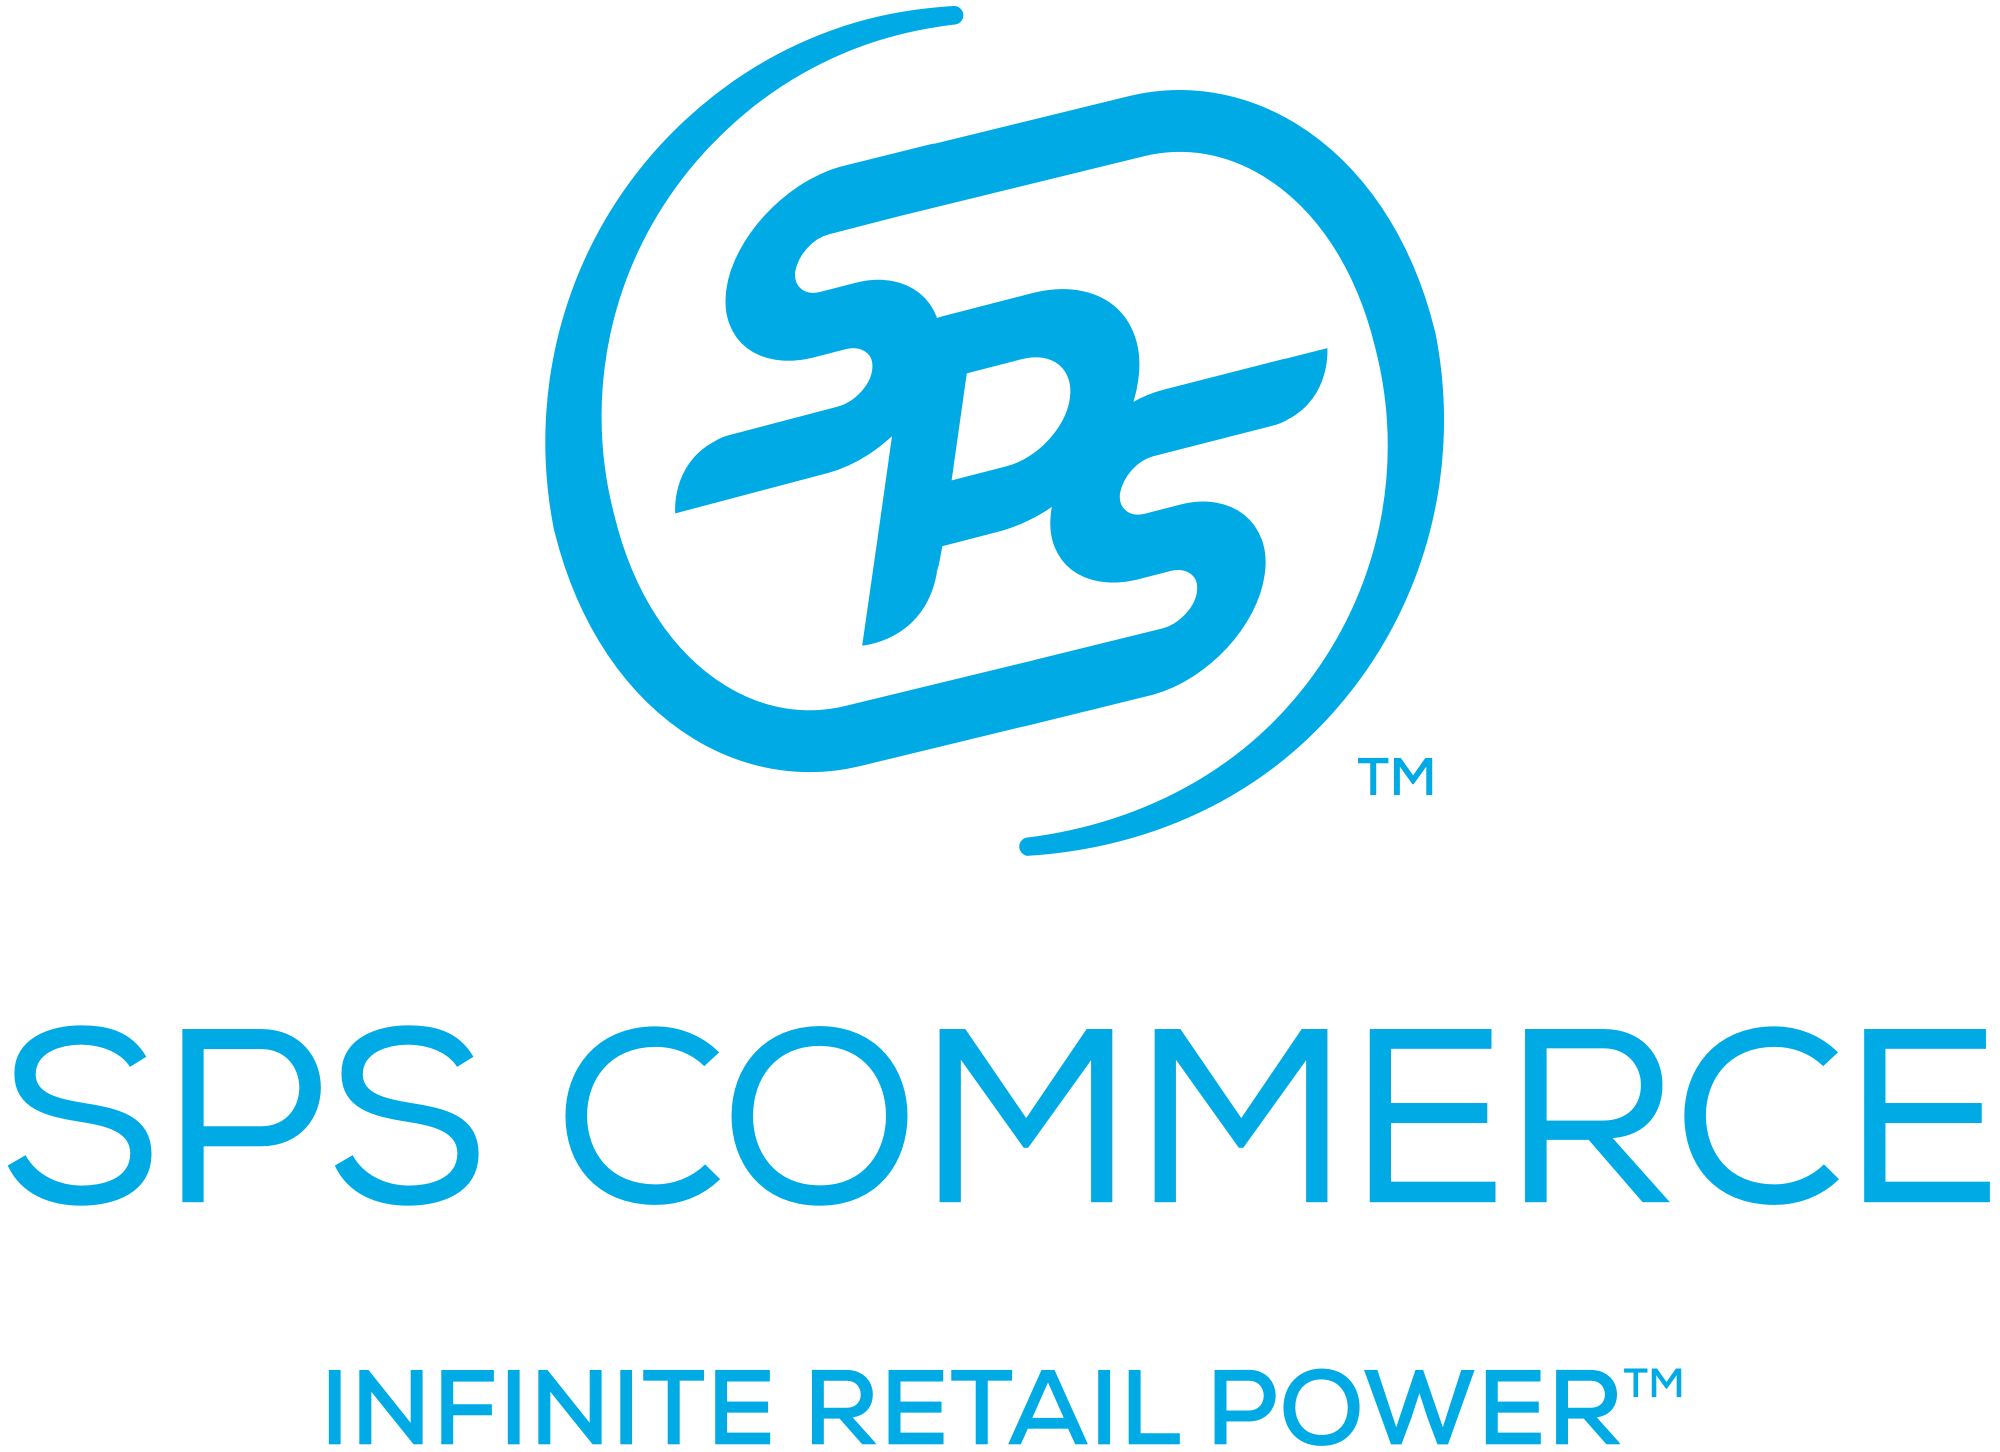 SPS Commerce - SPS Commerce – Full Service, Fully Embedded EDI Solution for Acumatica